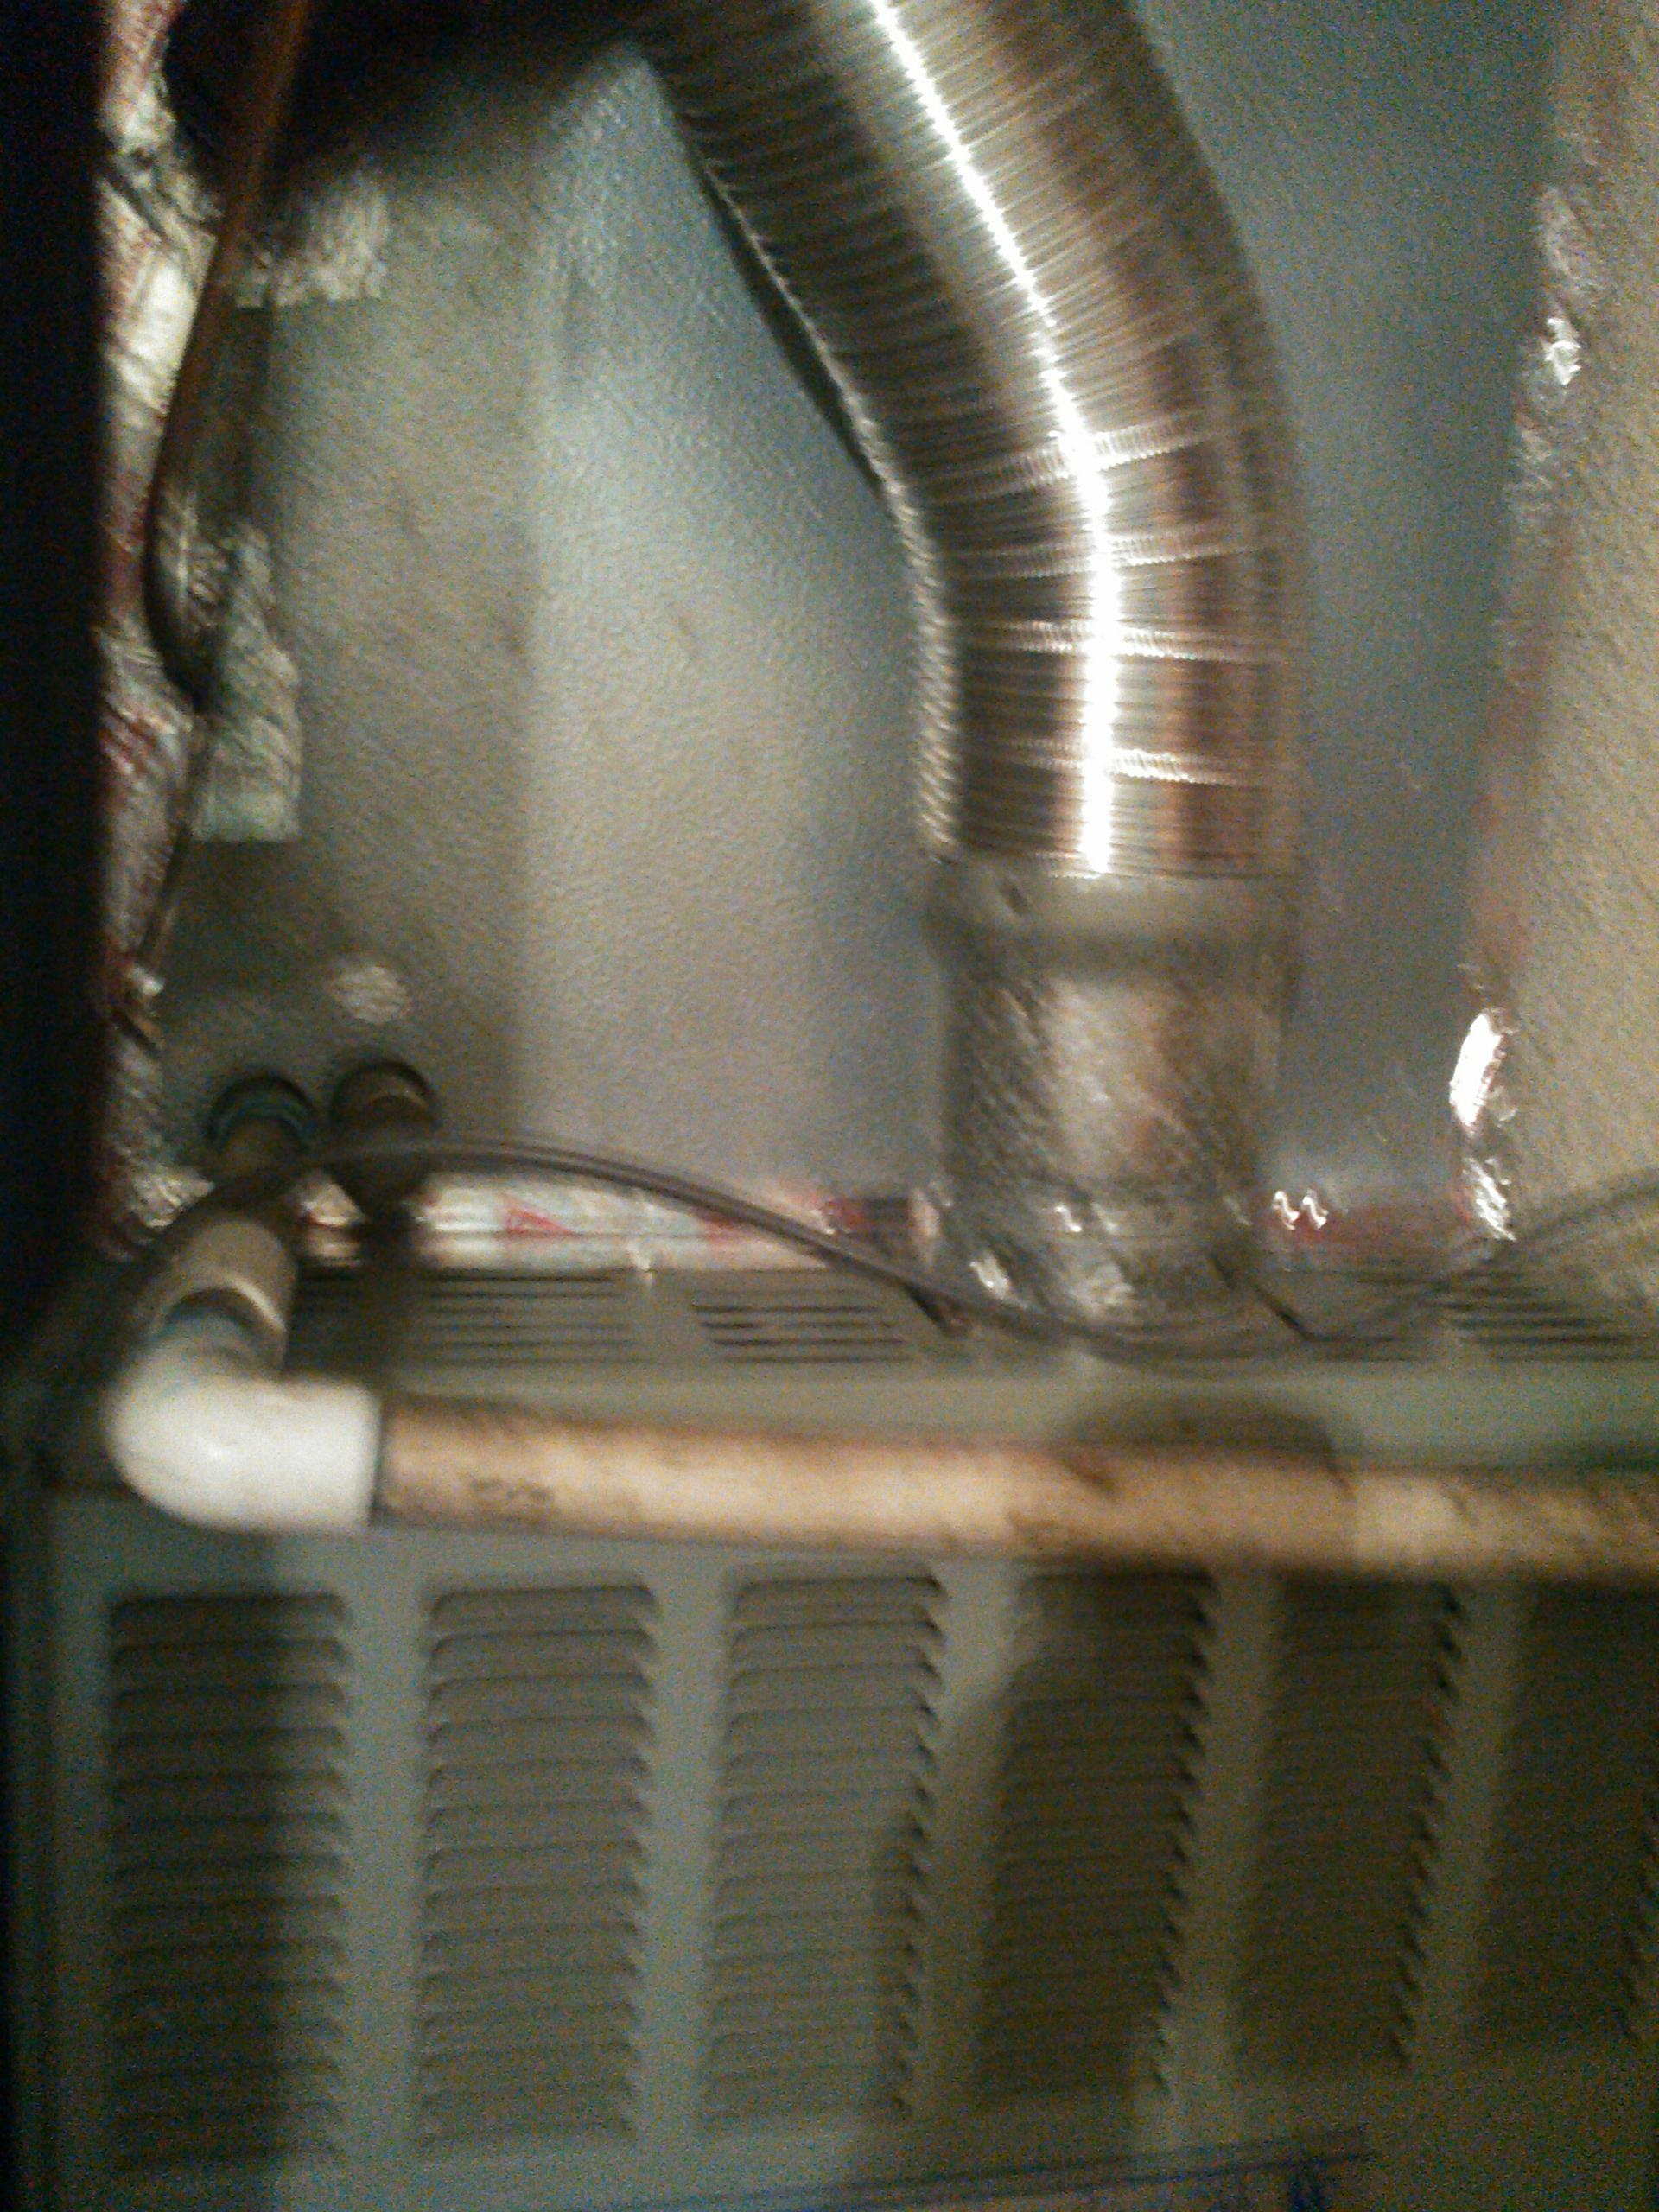 Walnut, CA - Removed cleaned and replaced evaporator coil